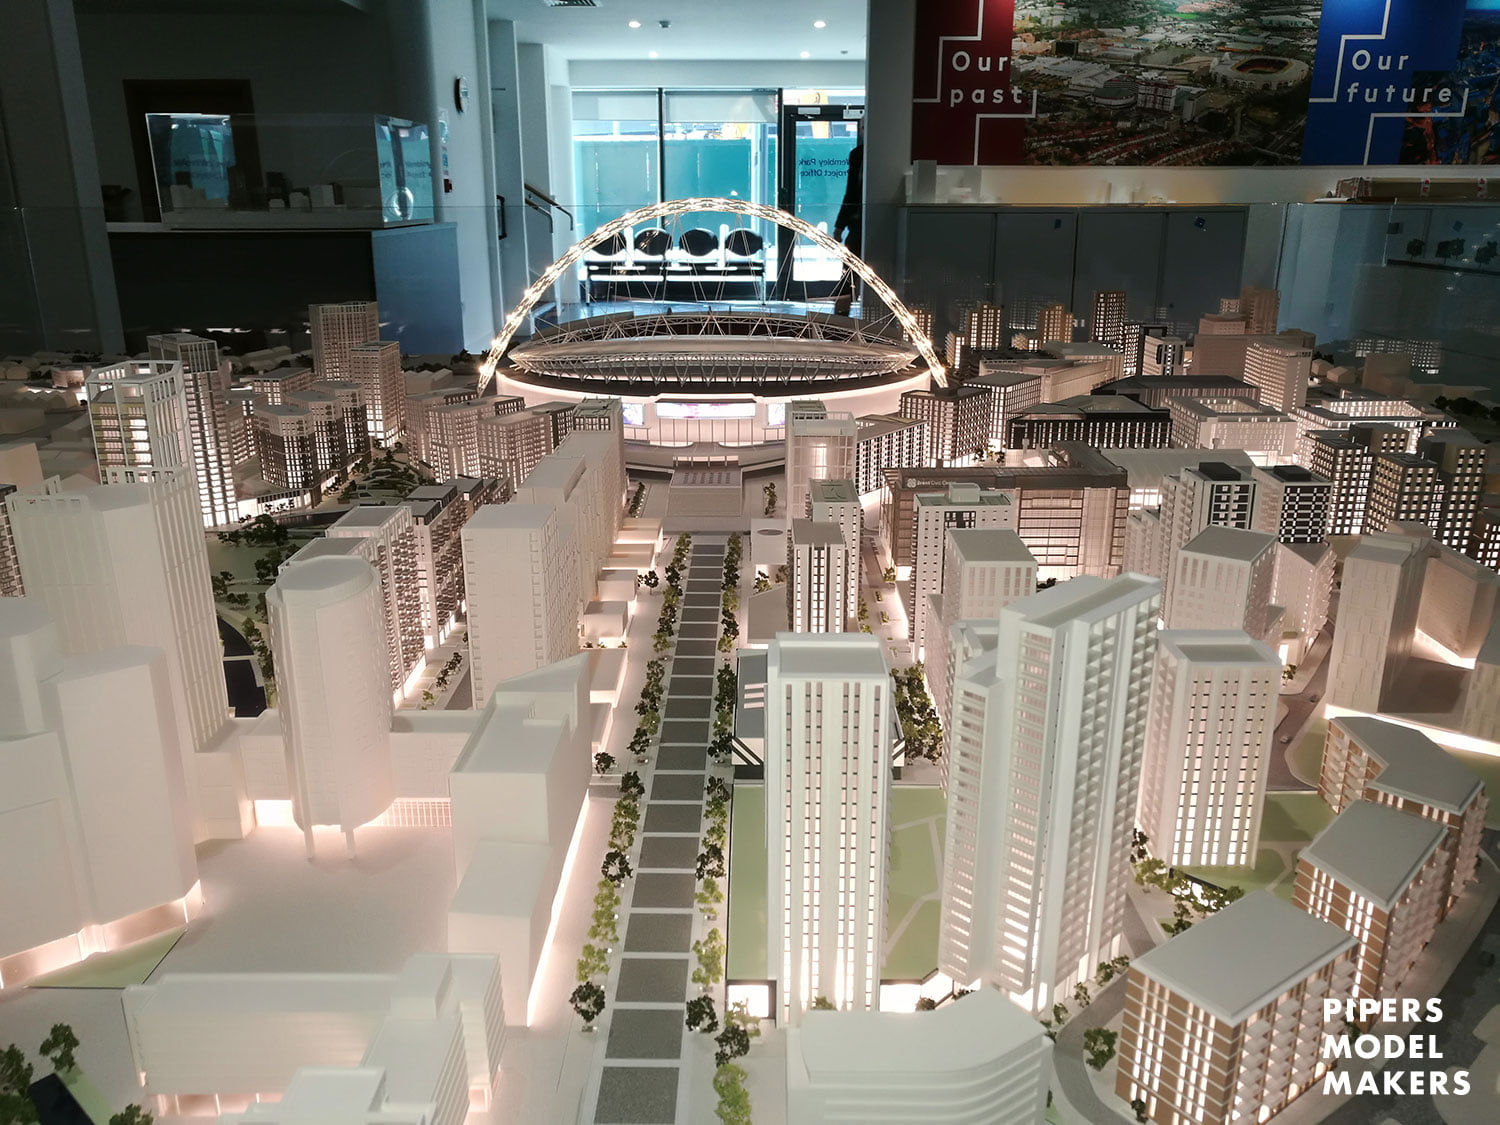 http://Wembley%20Quintain%20Architectural%20Model